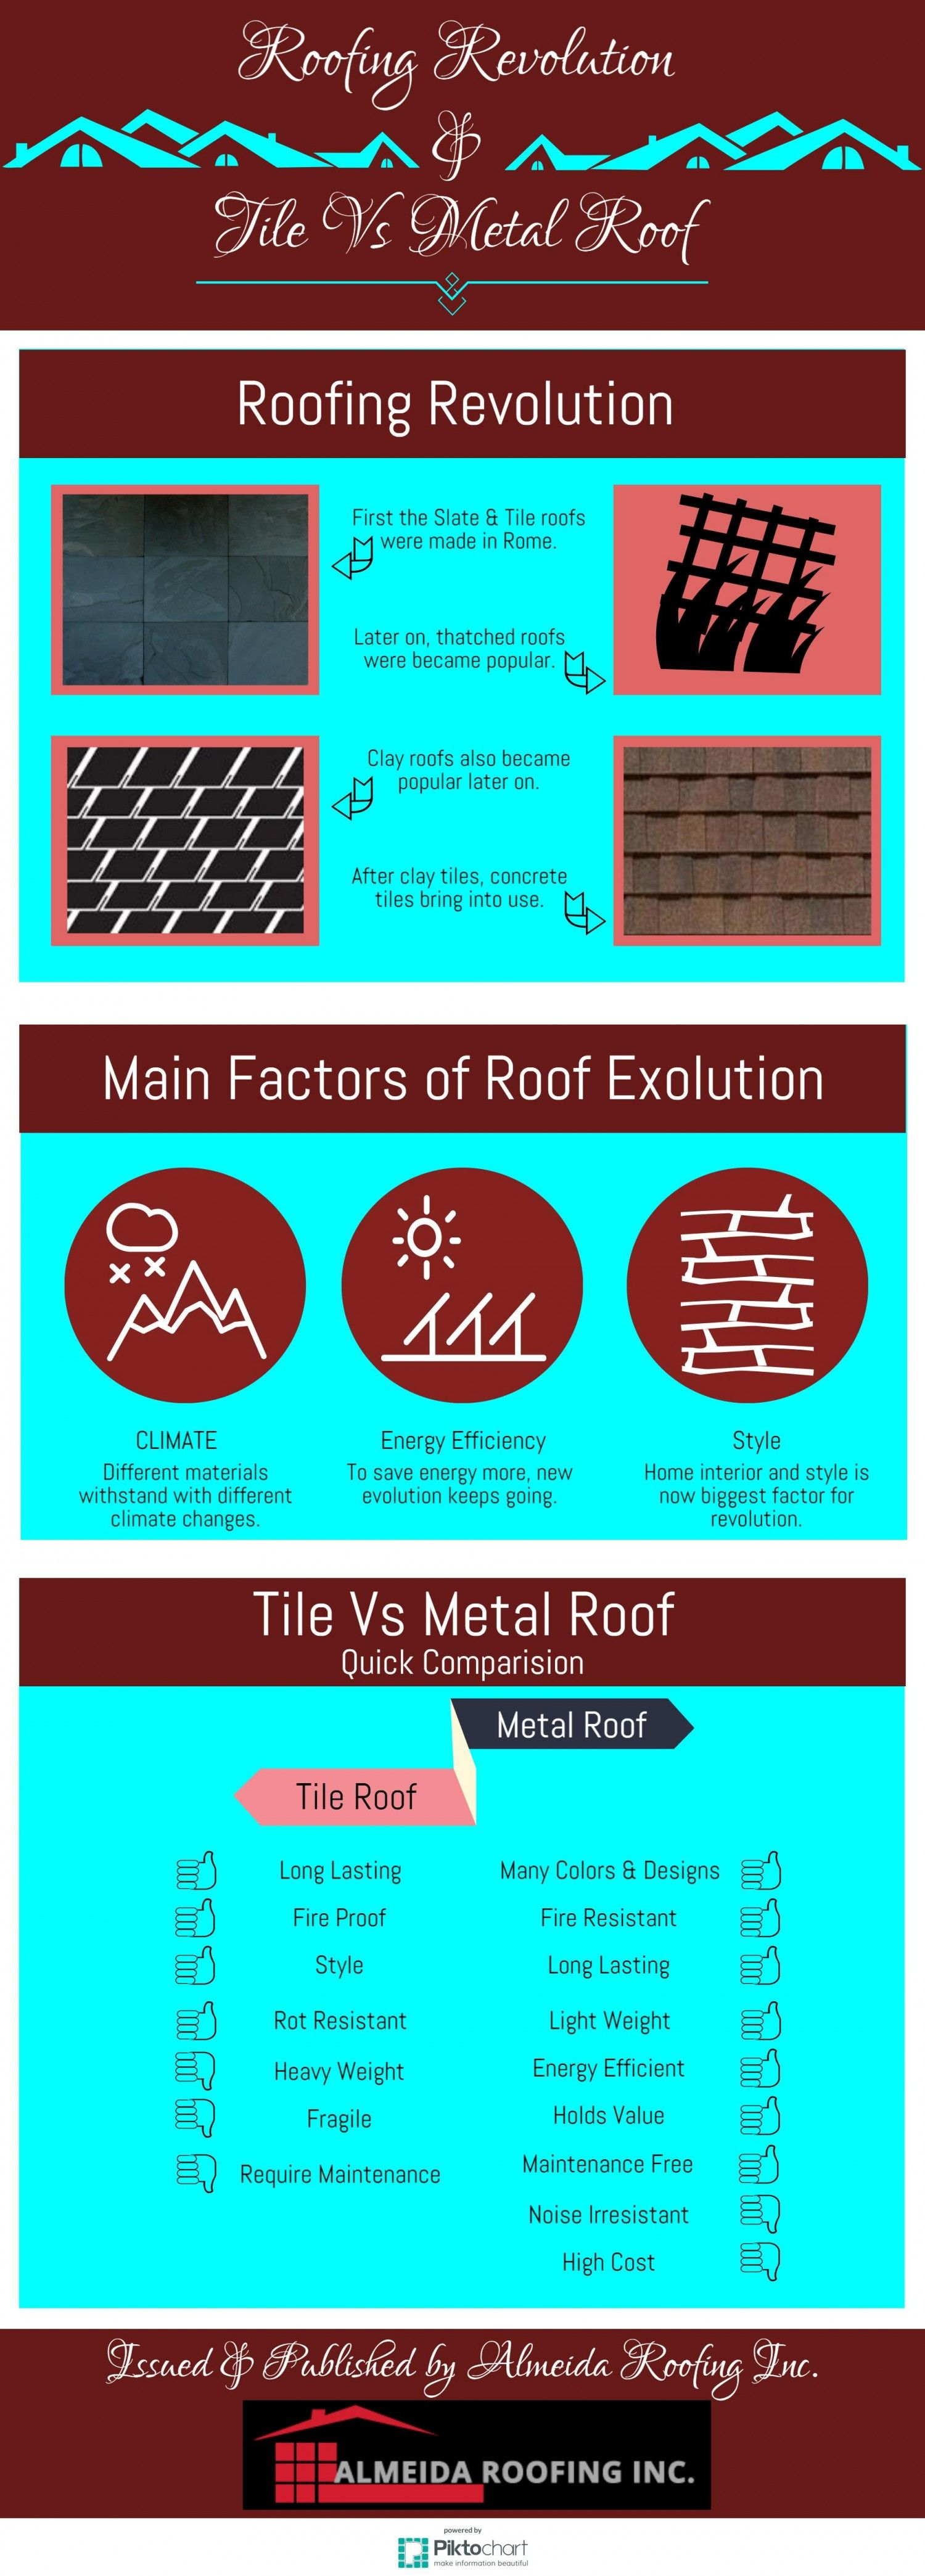 Roofing Revolution And Tile Vs Metal Roof Roofing Metal Roof Metal Roof Tiles